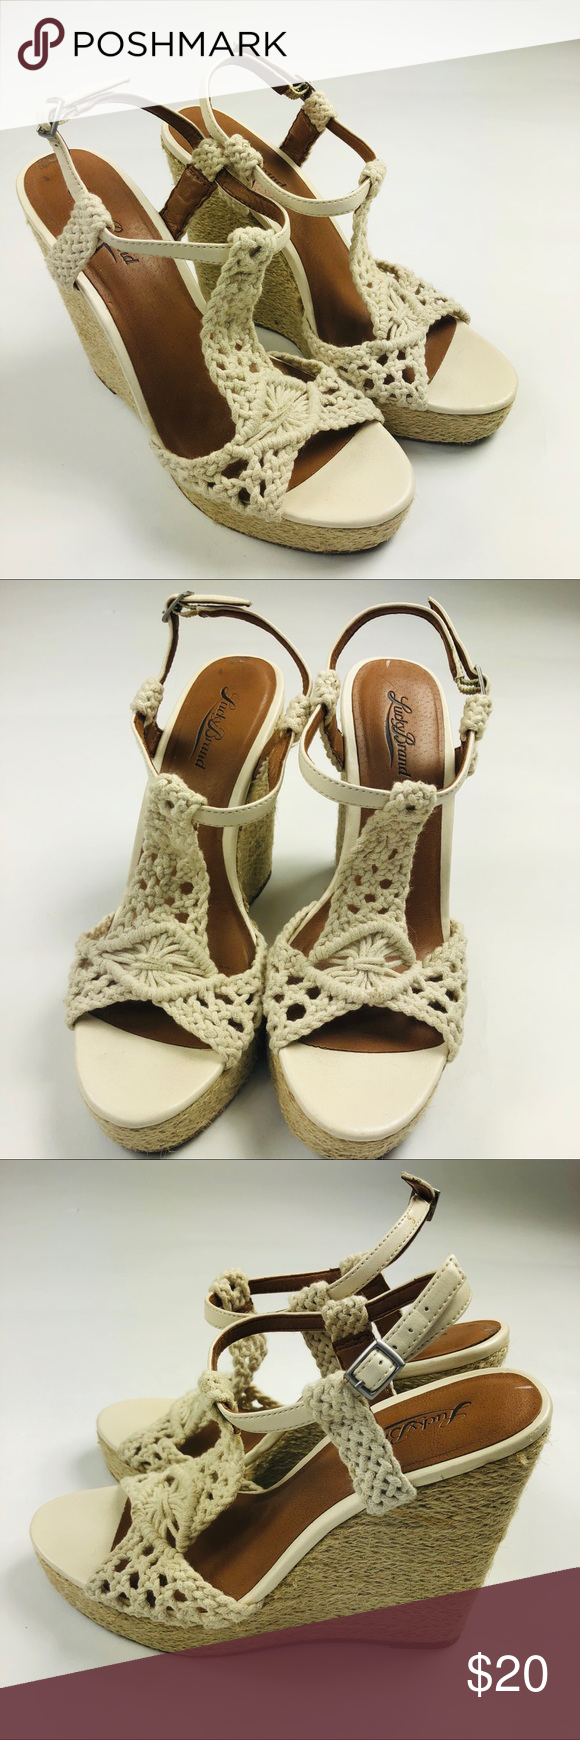 899467d6df4 Lucky Brand Rilo Wedge Sandals Ivory Crochet 8 Lucky Brand Women Rilo Wedge  Sandals Ivory cream